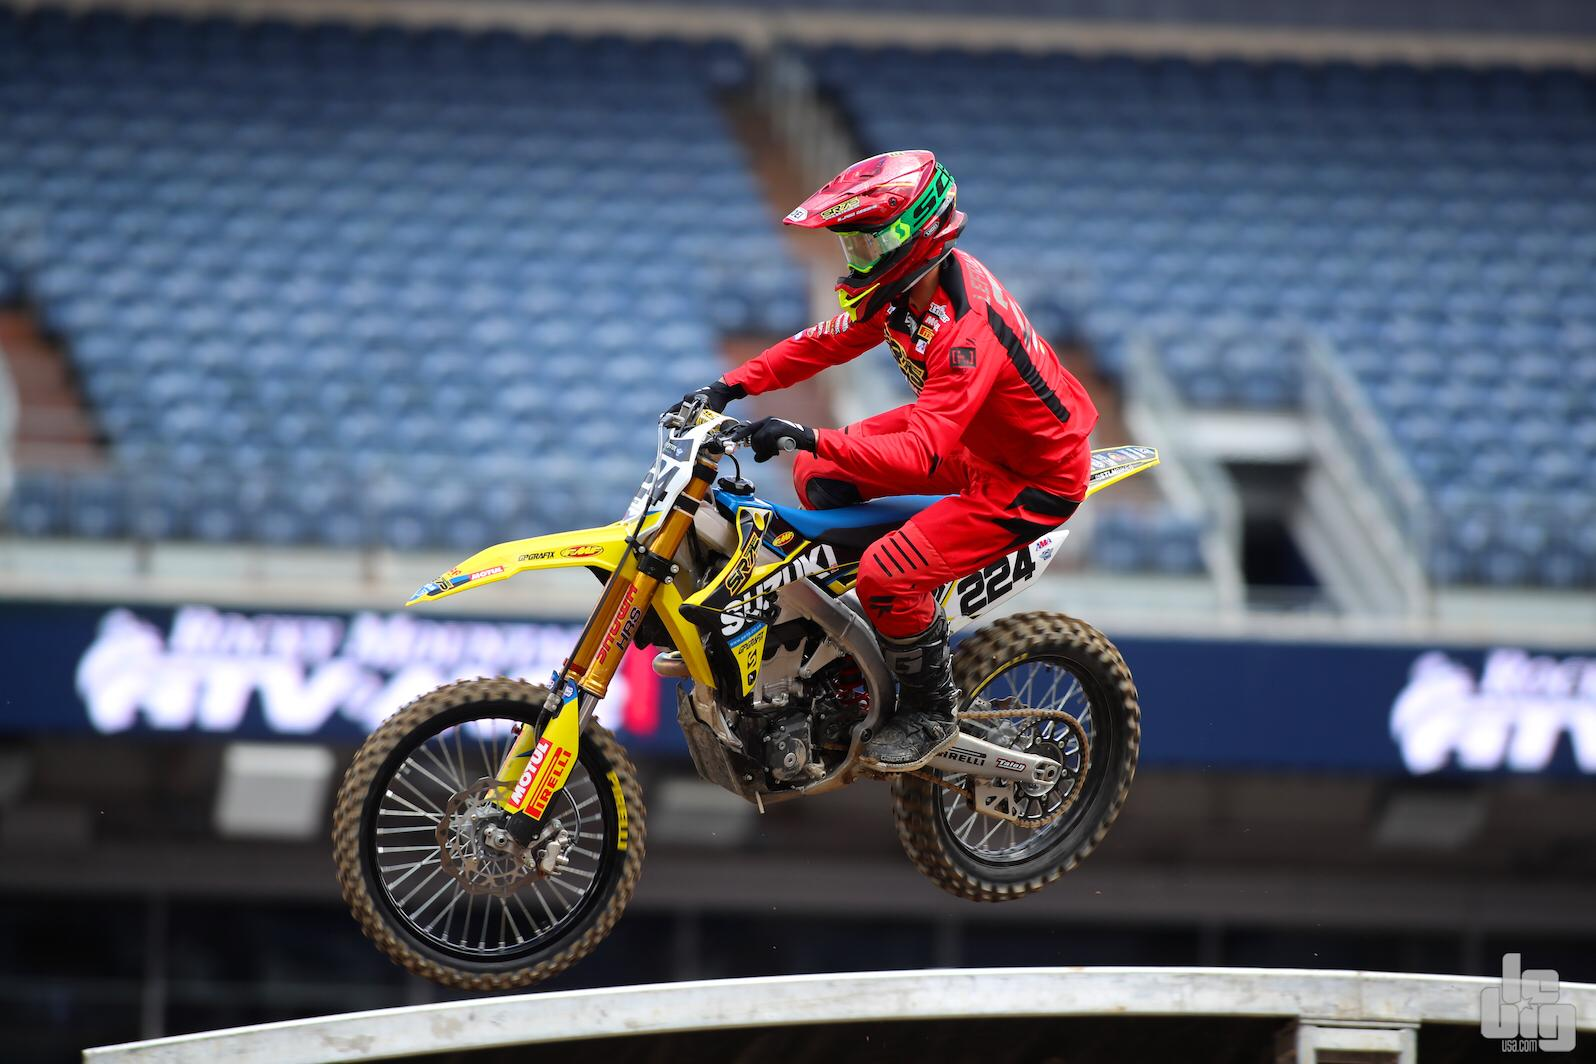 DENVER MONSTER ENERGY SUPERCROSS POINTS FOR SR75 SUZUKI'S CHARLES LEFRANÇOIS